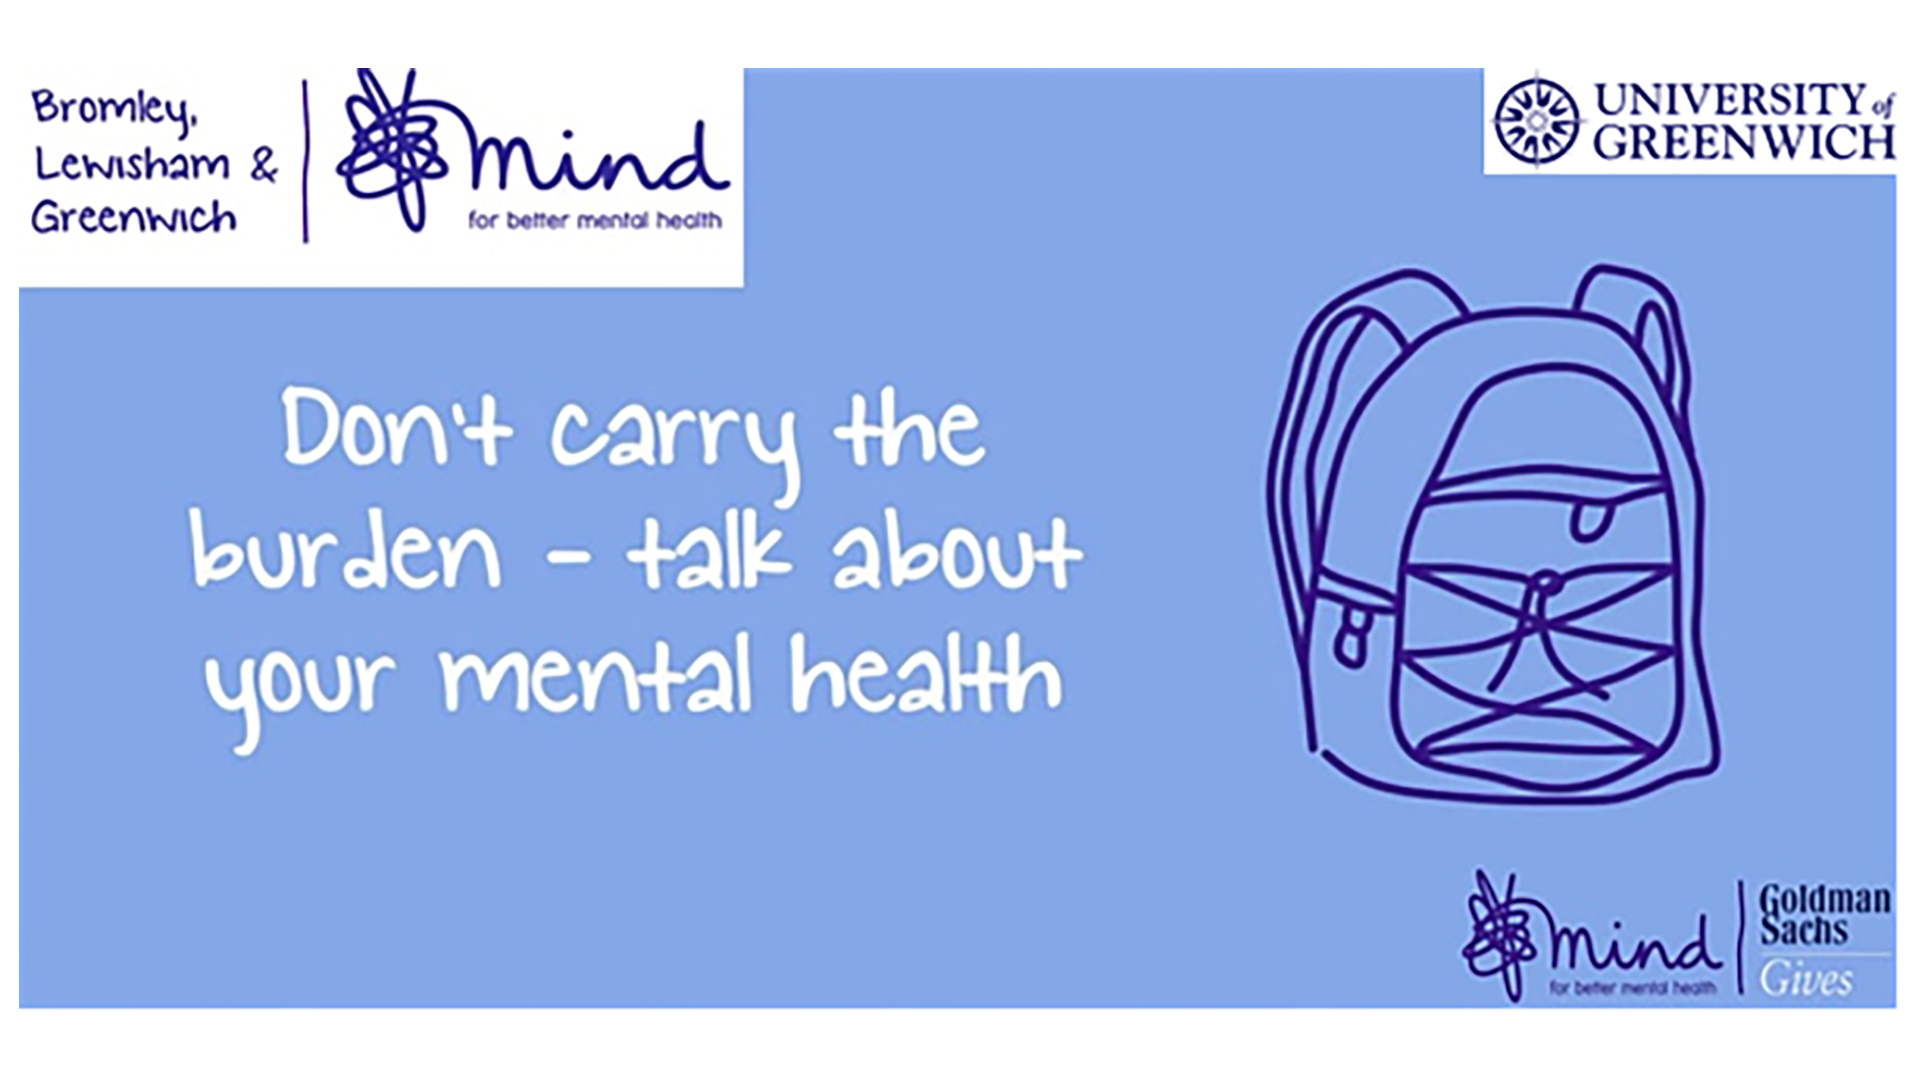 Don't carry the burden - talk about your mental health